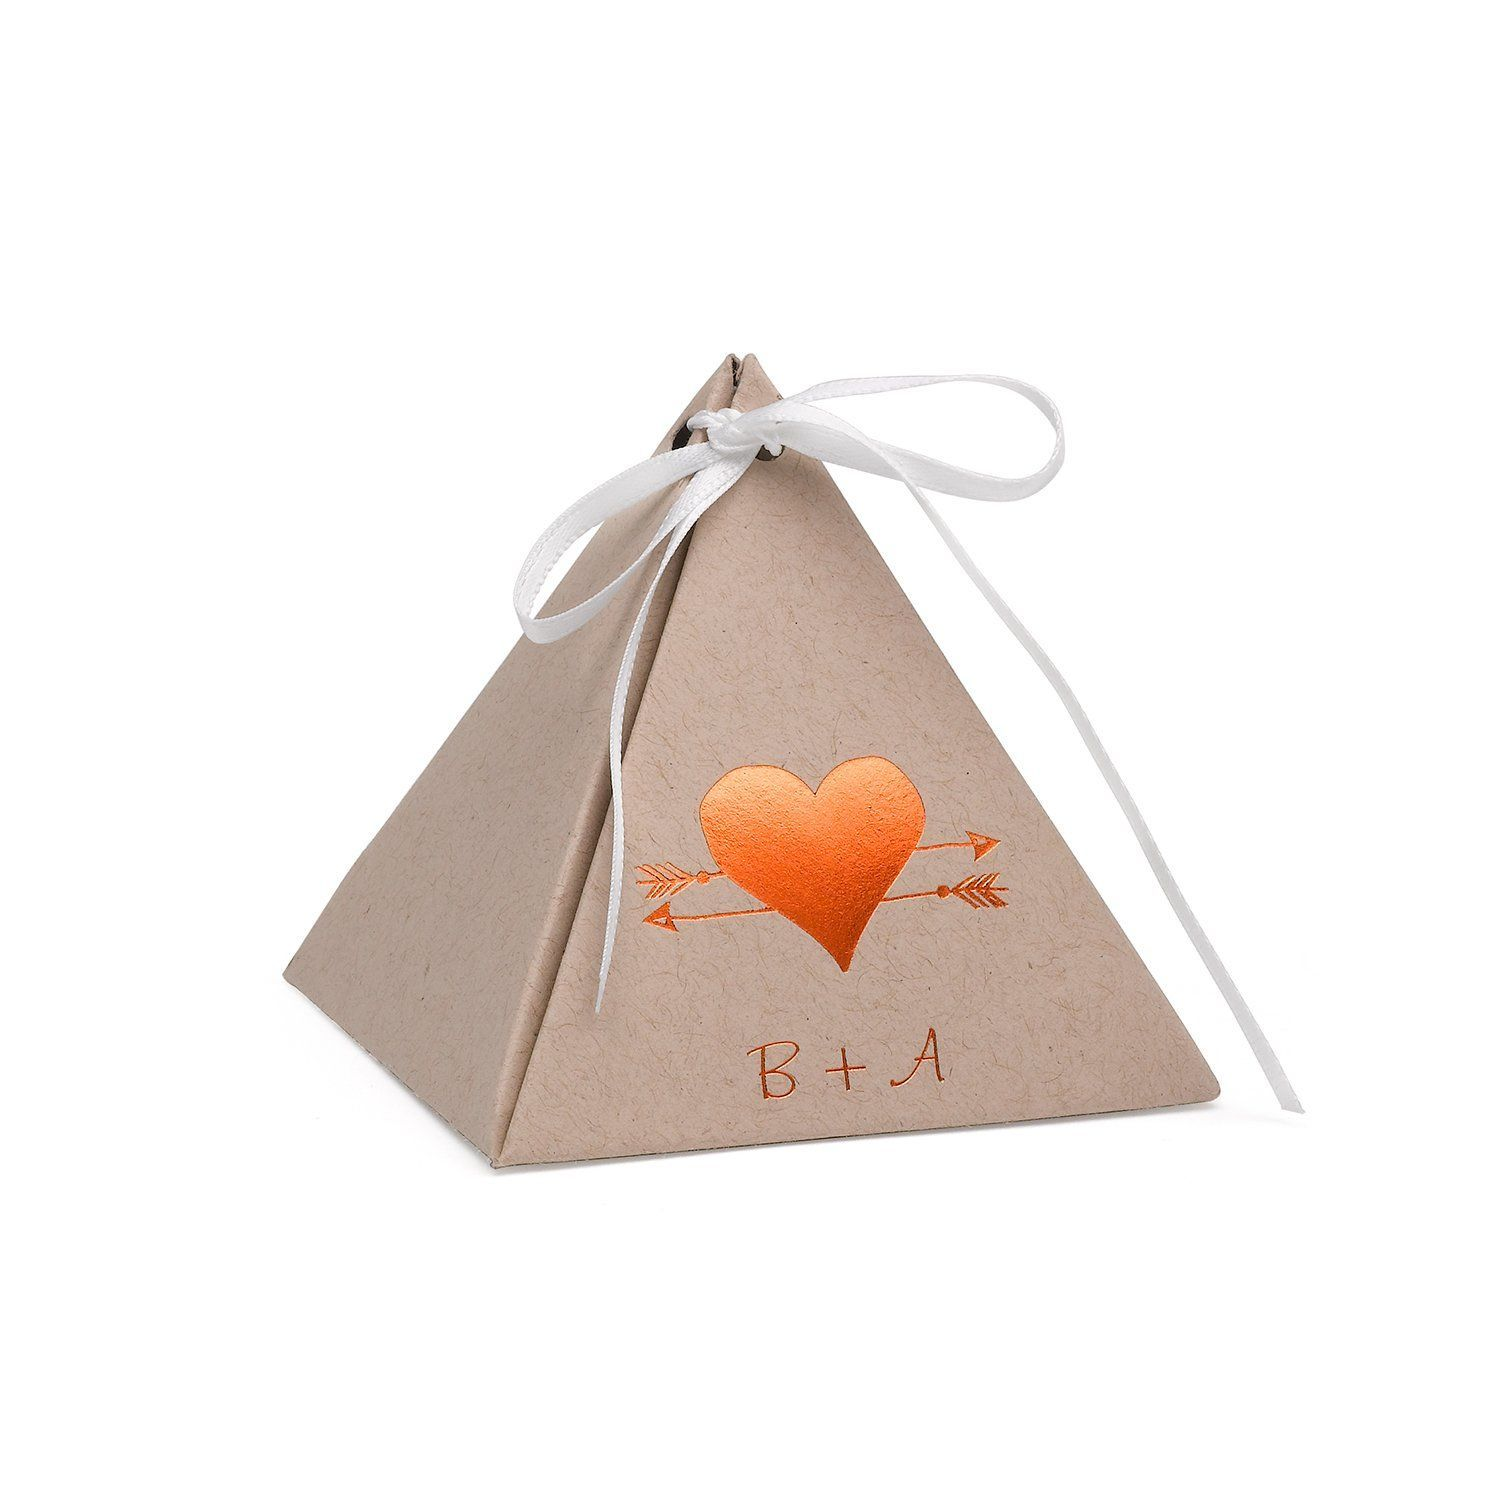 Personalized Kraft Paper Pyramid Favor Box | Kraft paper and Products